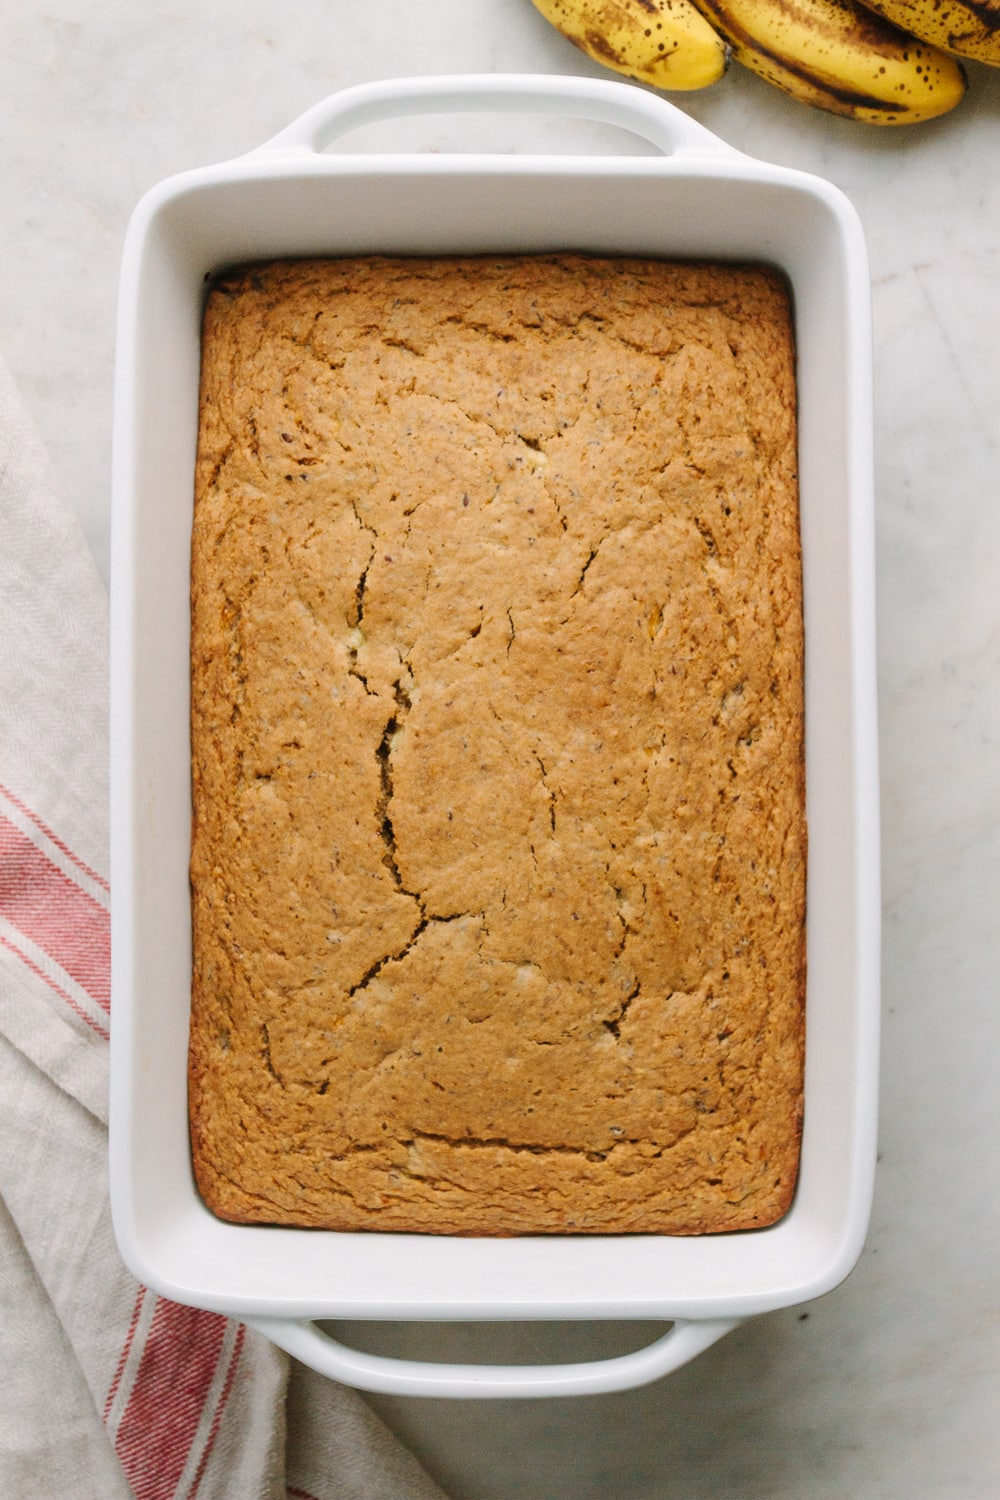 top down view of freshly baked banana bread cooling before frosting.